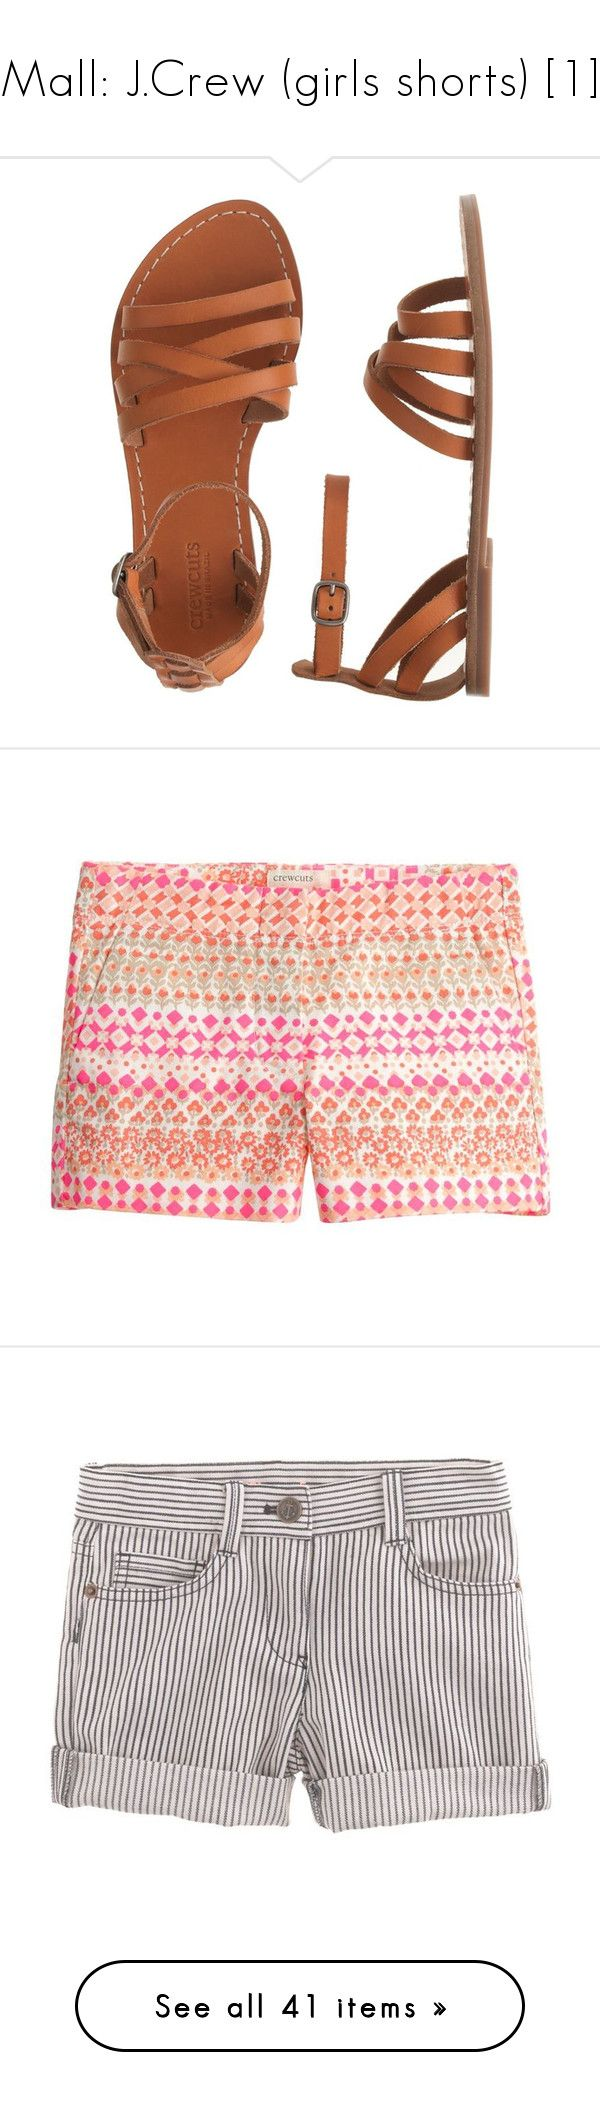 """""""Mall: J.Crew (girls shorts) [1]"""" by buildyourown ❤ liked on Polyvore featuring sandals, shoes, shorts, bottoms, patterned, pink, kids, zipper shorts, short chino shorts and j crew shorts"""